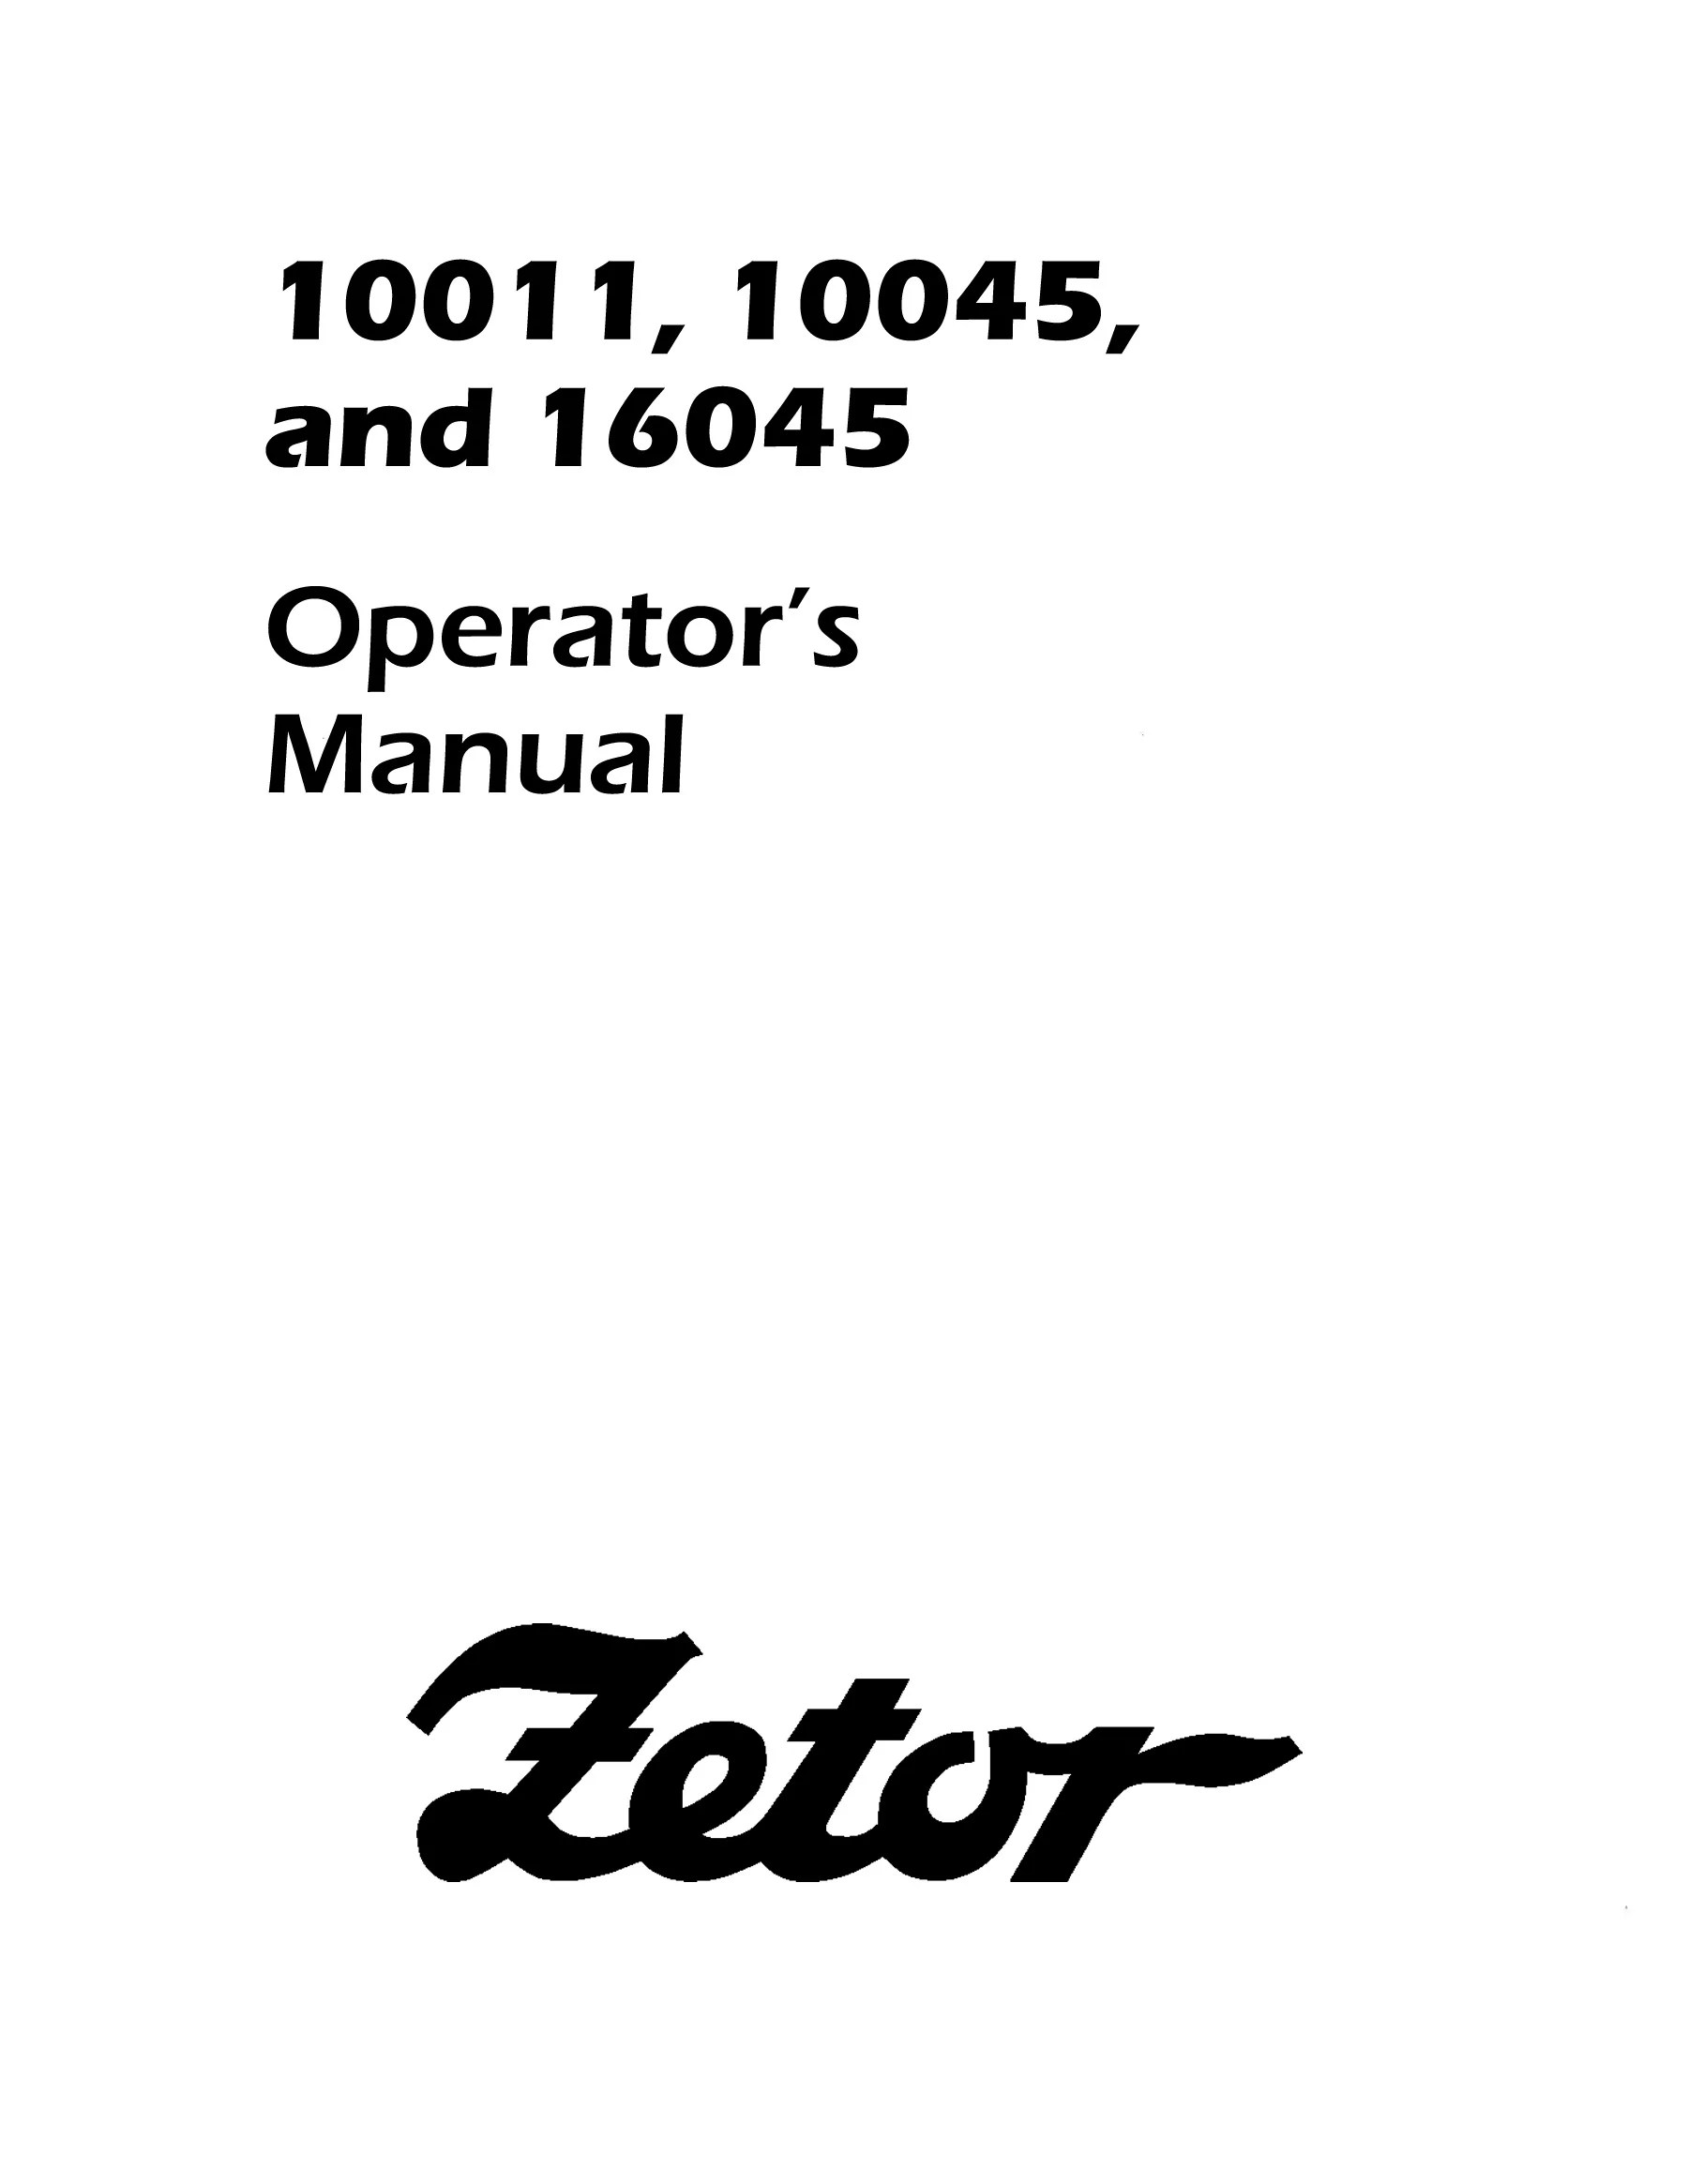 Zetor And Tractor Manual